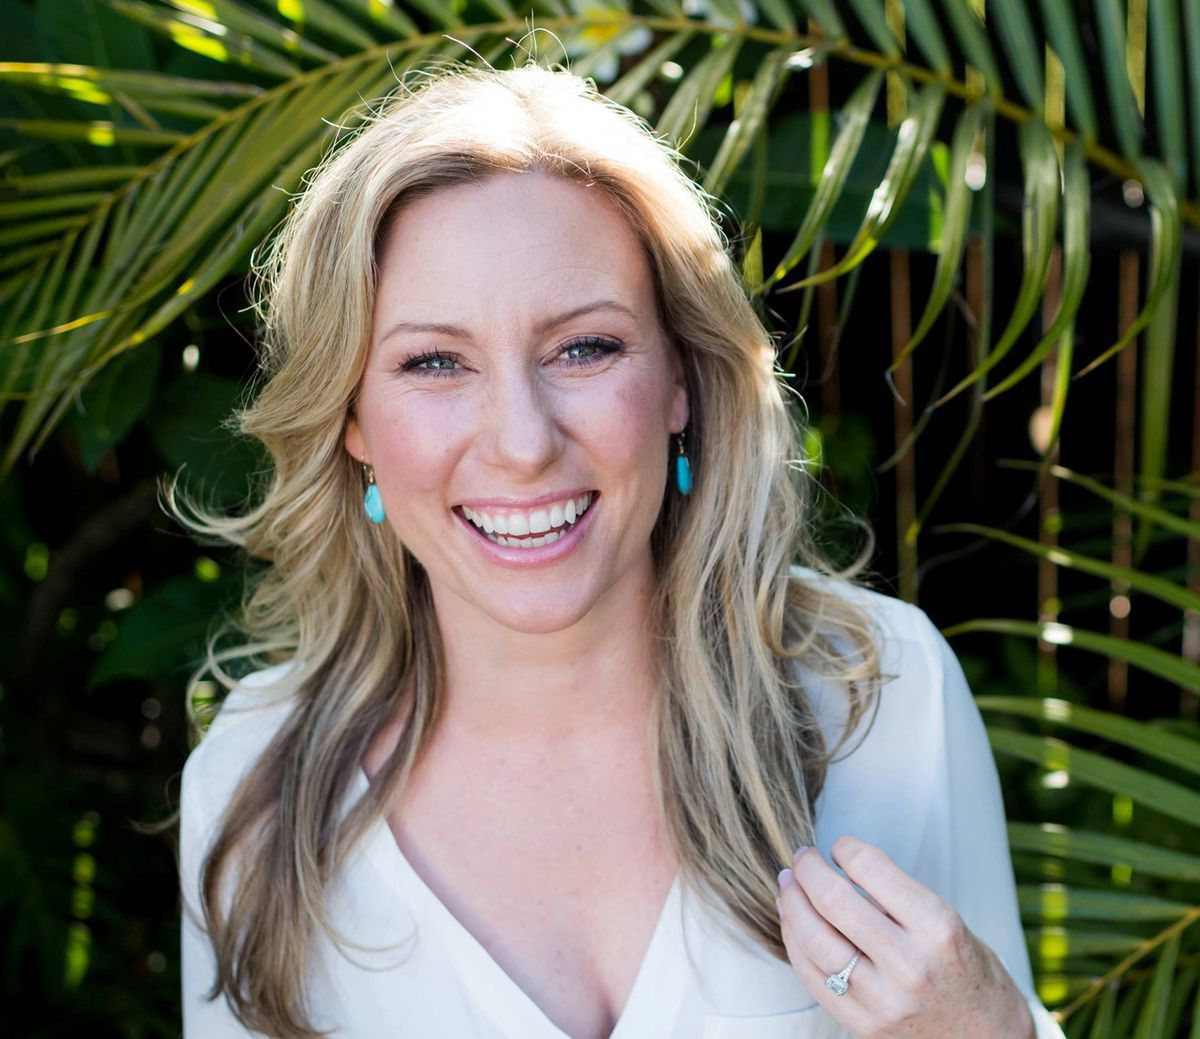 Justine Damond, also known as Justine Ruszczyk, from Sydney, is seen in this 2015 photo released by Stephen Govel Photography in New York. Courtesy Stephen Govel Photography/Handout via REUTERS